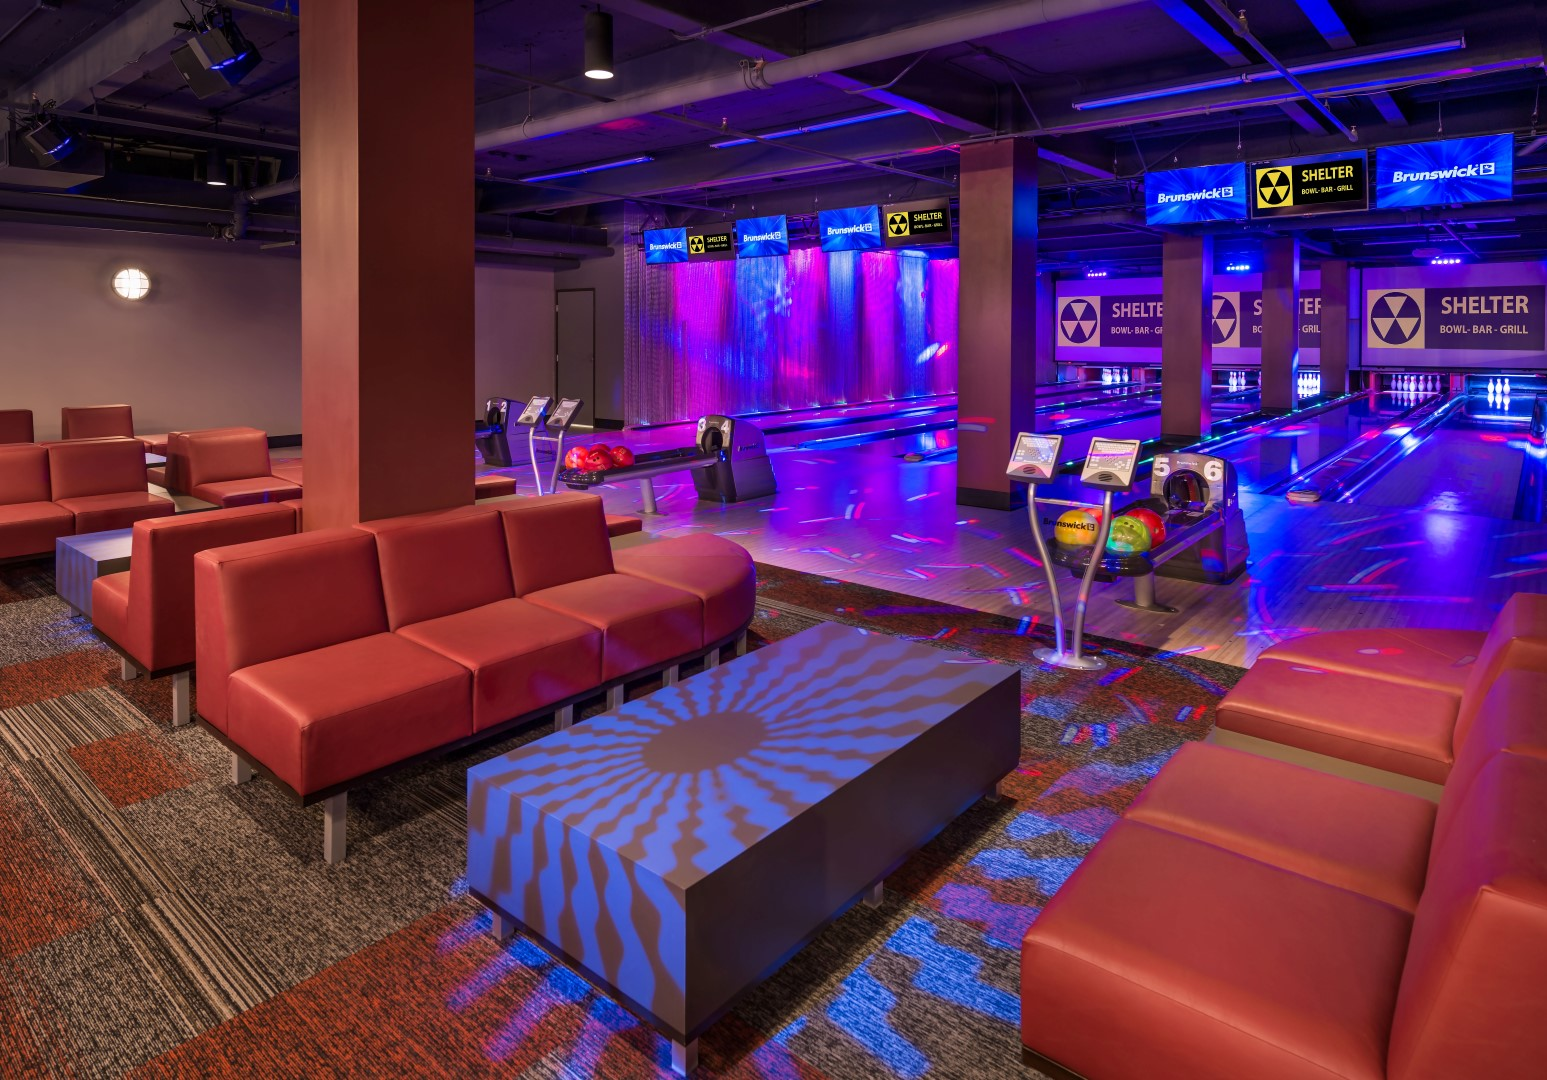 111 N Virginia - Shelter Bowl, Bar and Grill